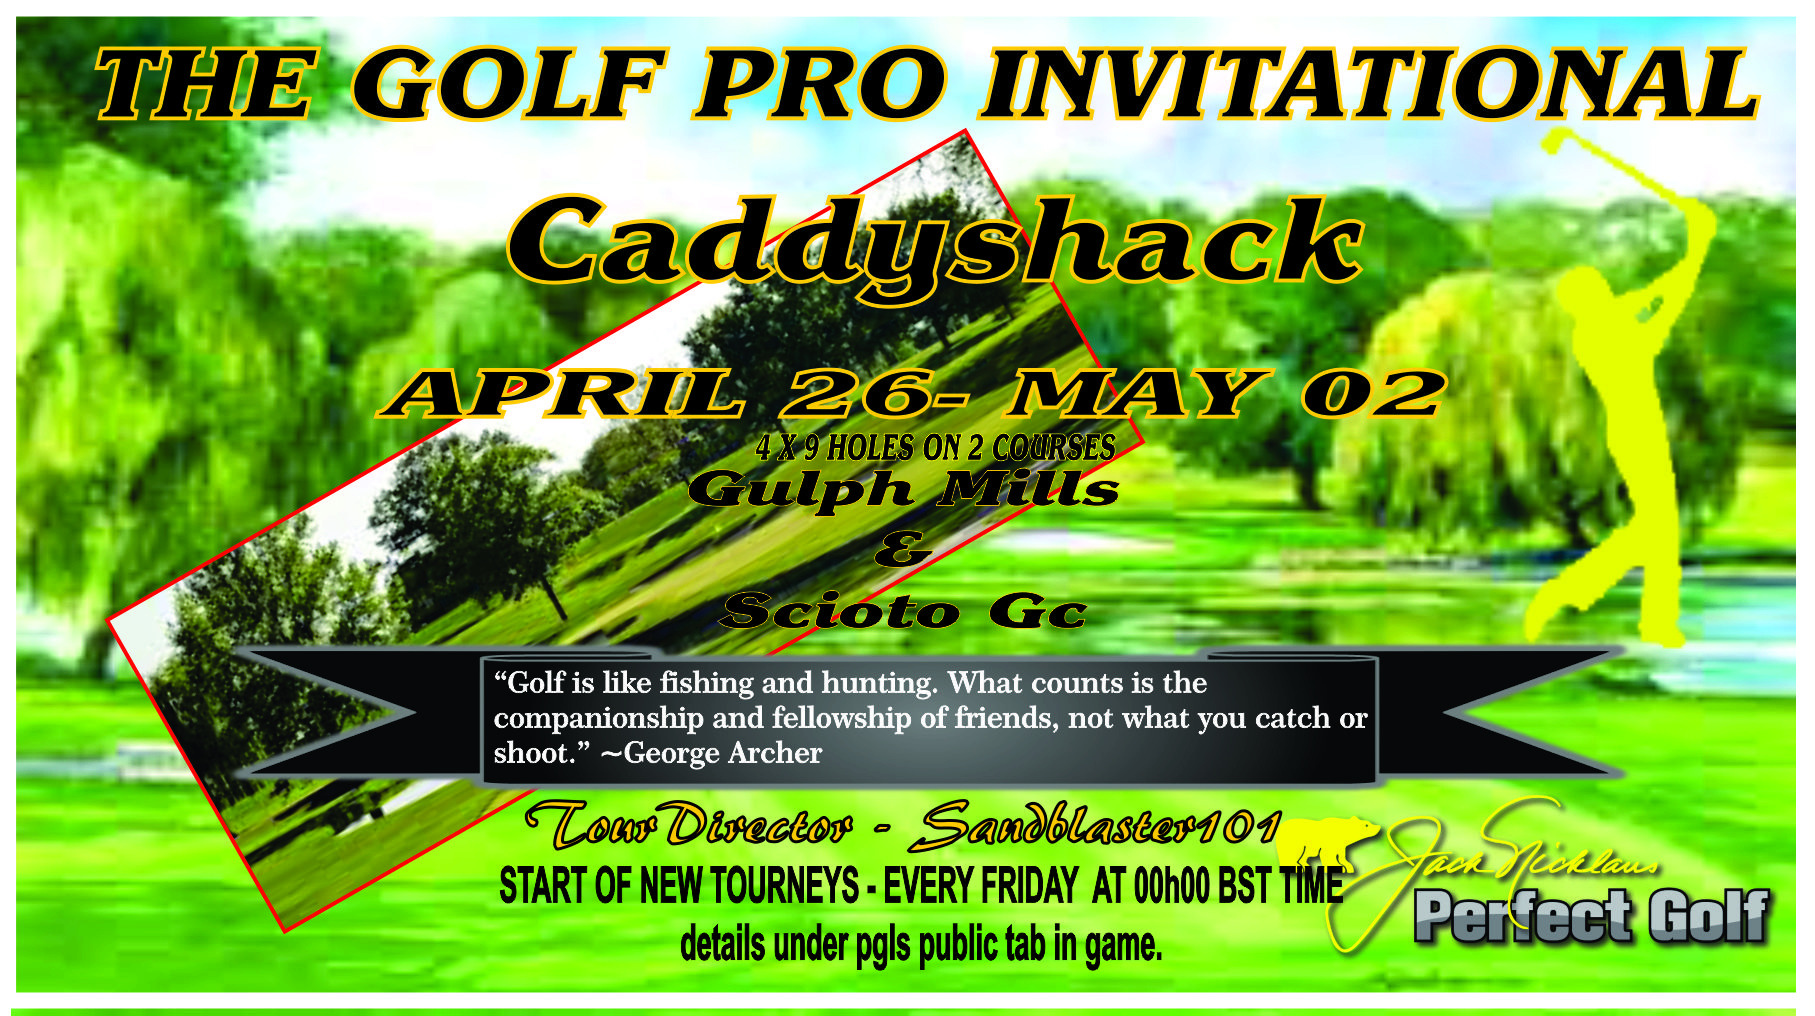 CaddyShack Weekly Tournament Golfpr11